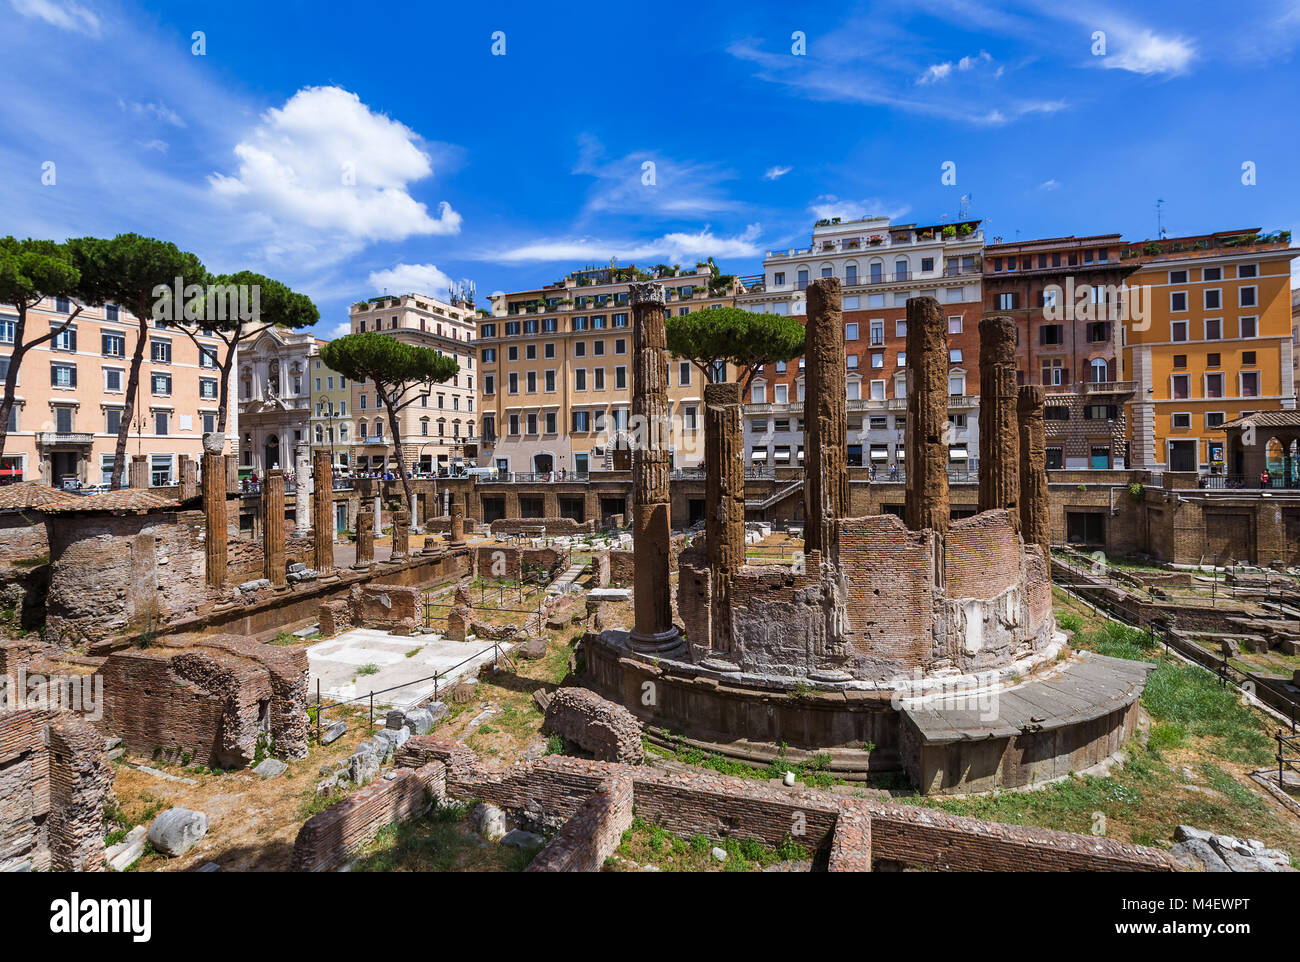 Area Sacra ruins in Rome Italy - Stock Image